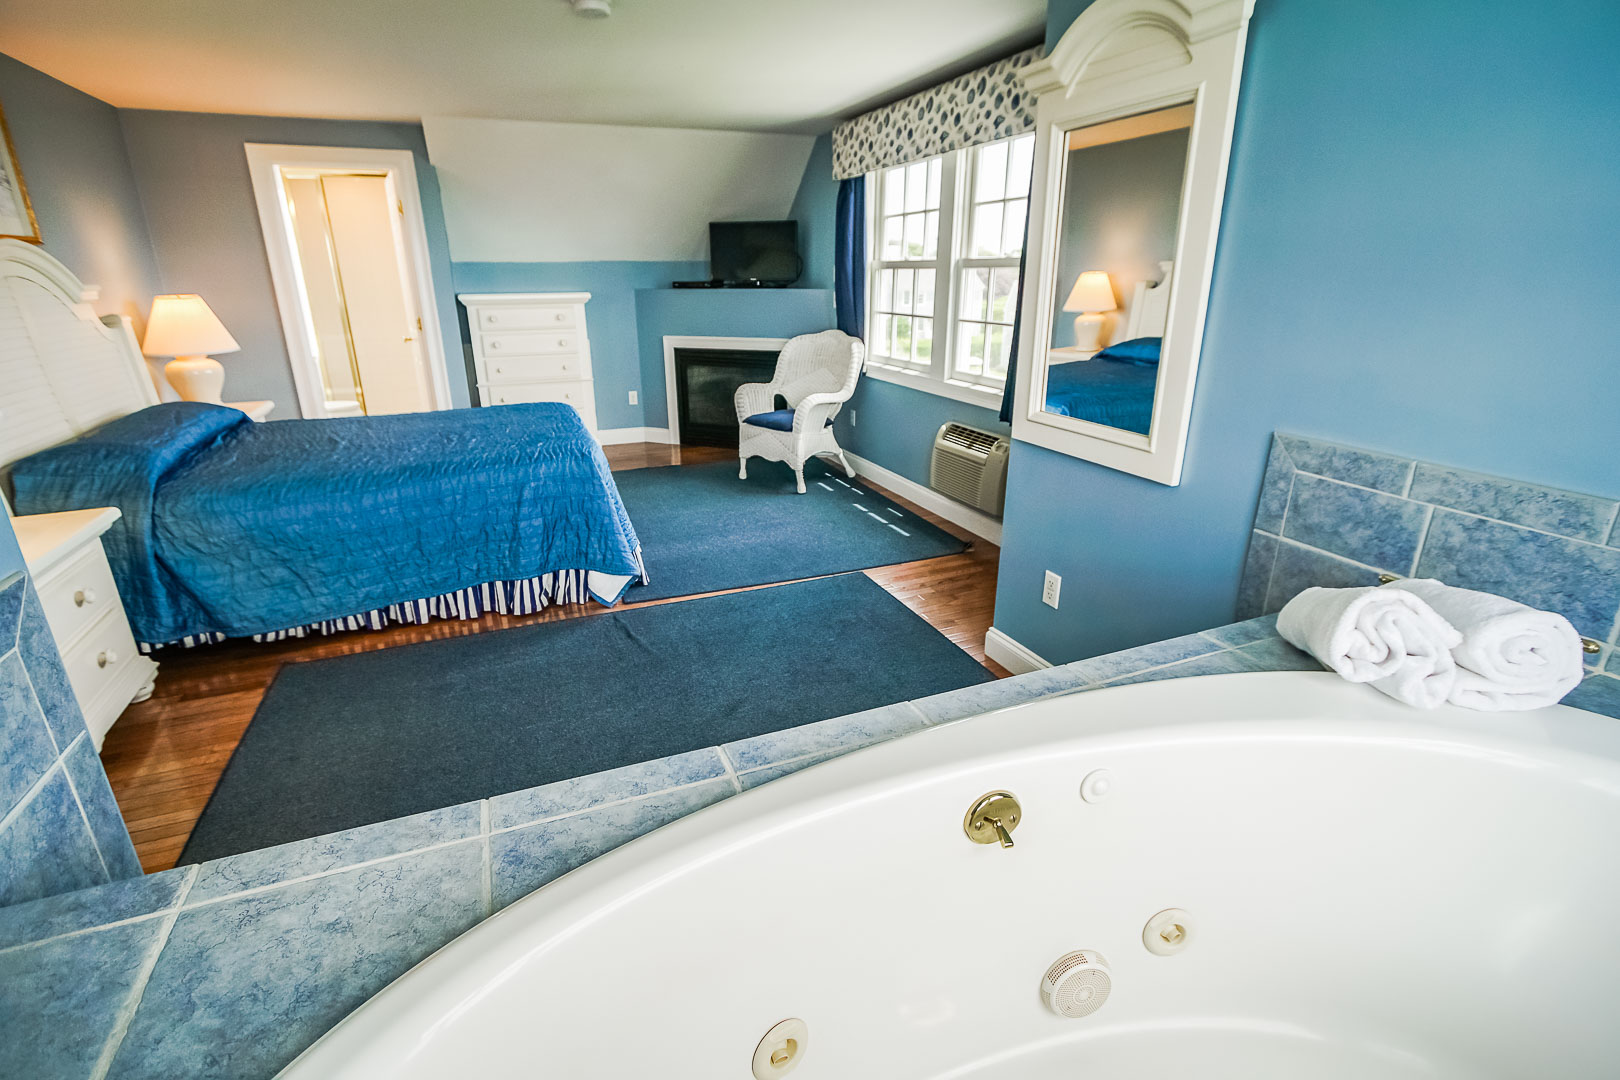 A spacious master bedroom with a jacuzzi tub at VRI's Beachside Village Resort in Massachusetts.